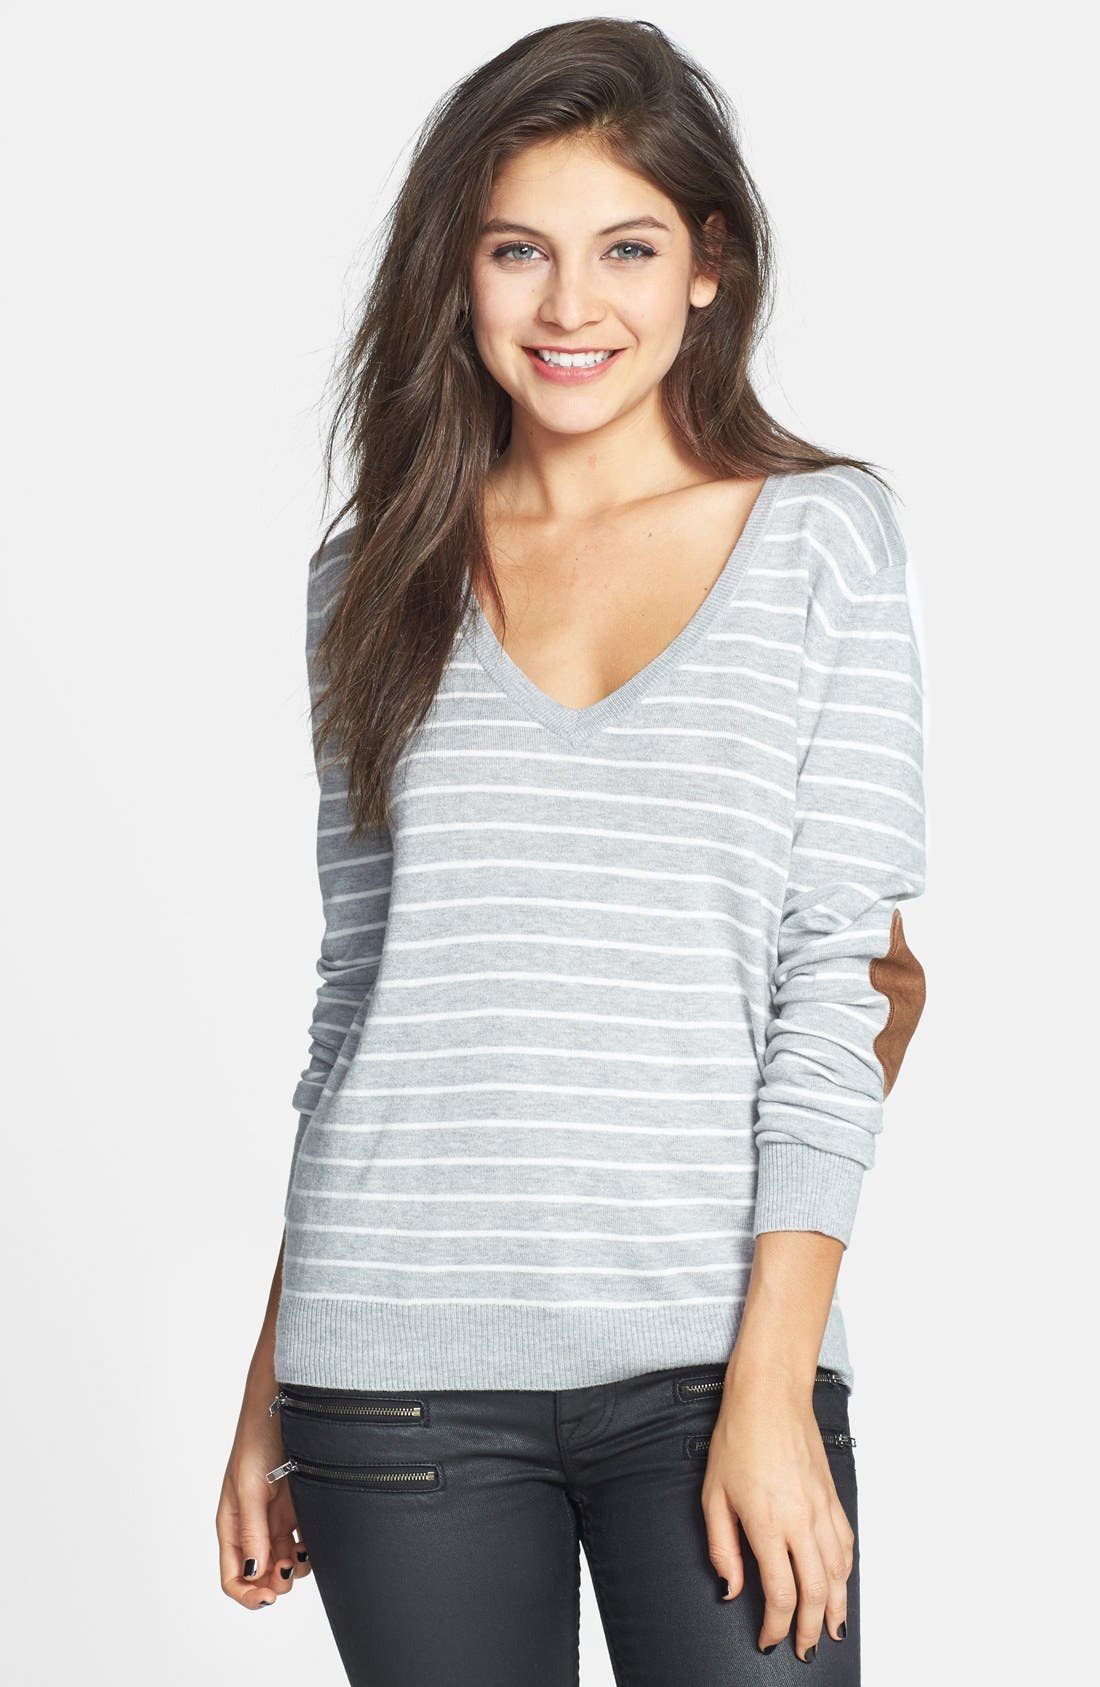 Alternate Image 1 Selected - BP. Stripe Elbow Patch V-Neck Sweater (Juniors)